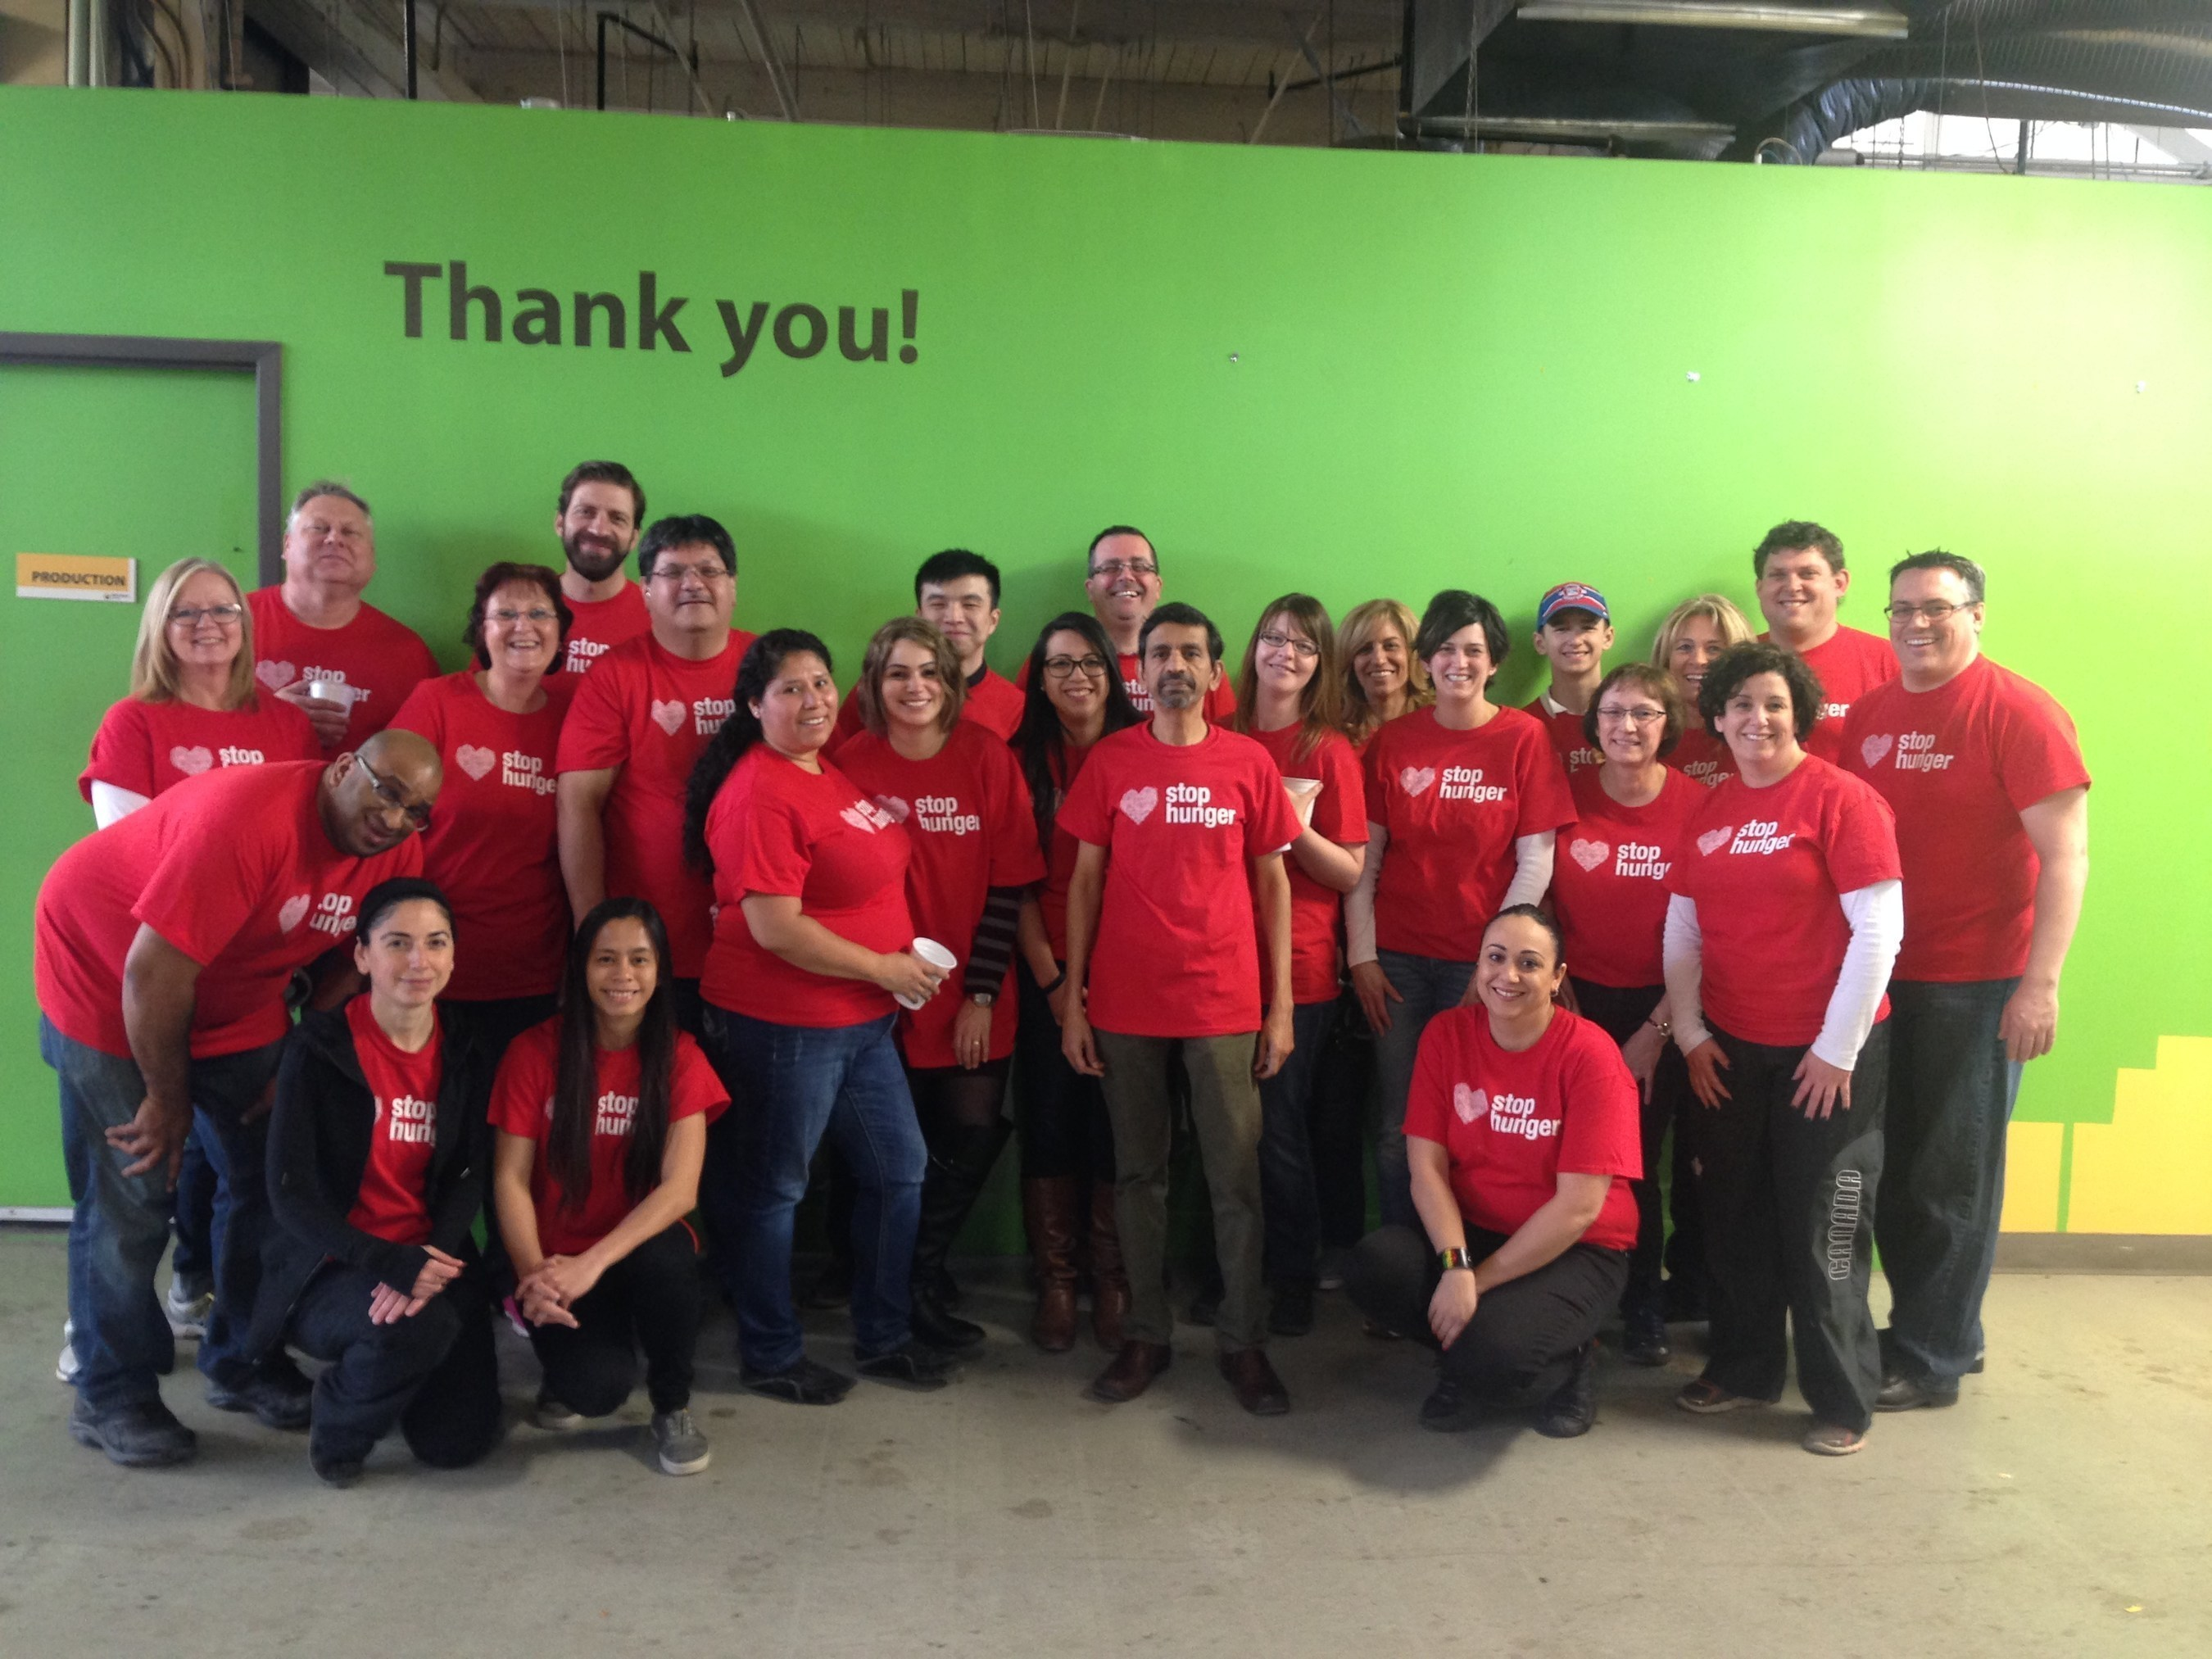 Sodexo team in Toronto celebrates Stop Hunger Servathon, an annual volunteer effort throughout April that encourages Sodexo's 420,000 employees worldwide to fight hunger in local communities. 2016 marks the 20th anniversary of Sodexo's commitment to Stop Hunger.